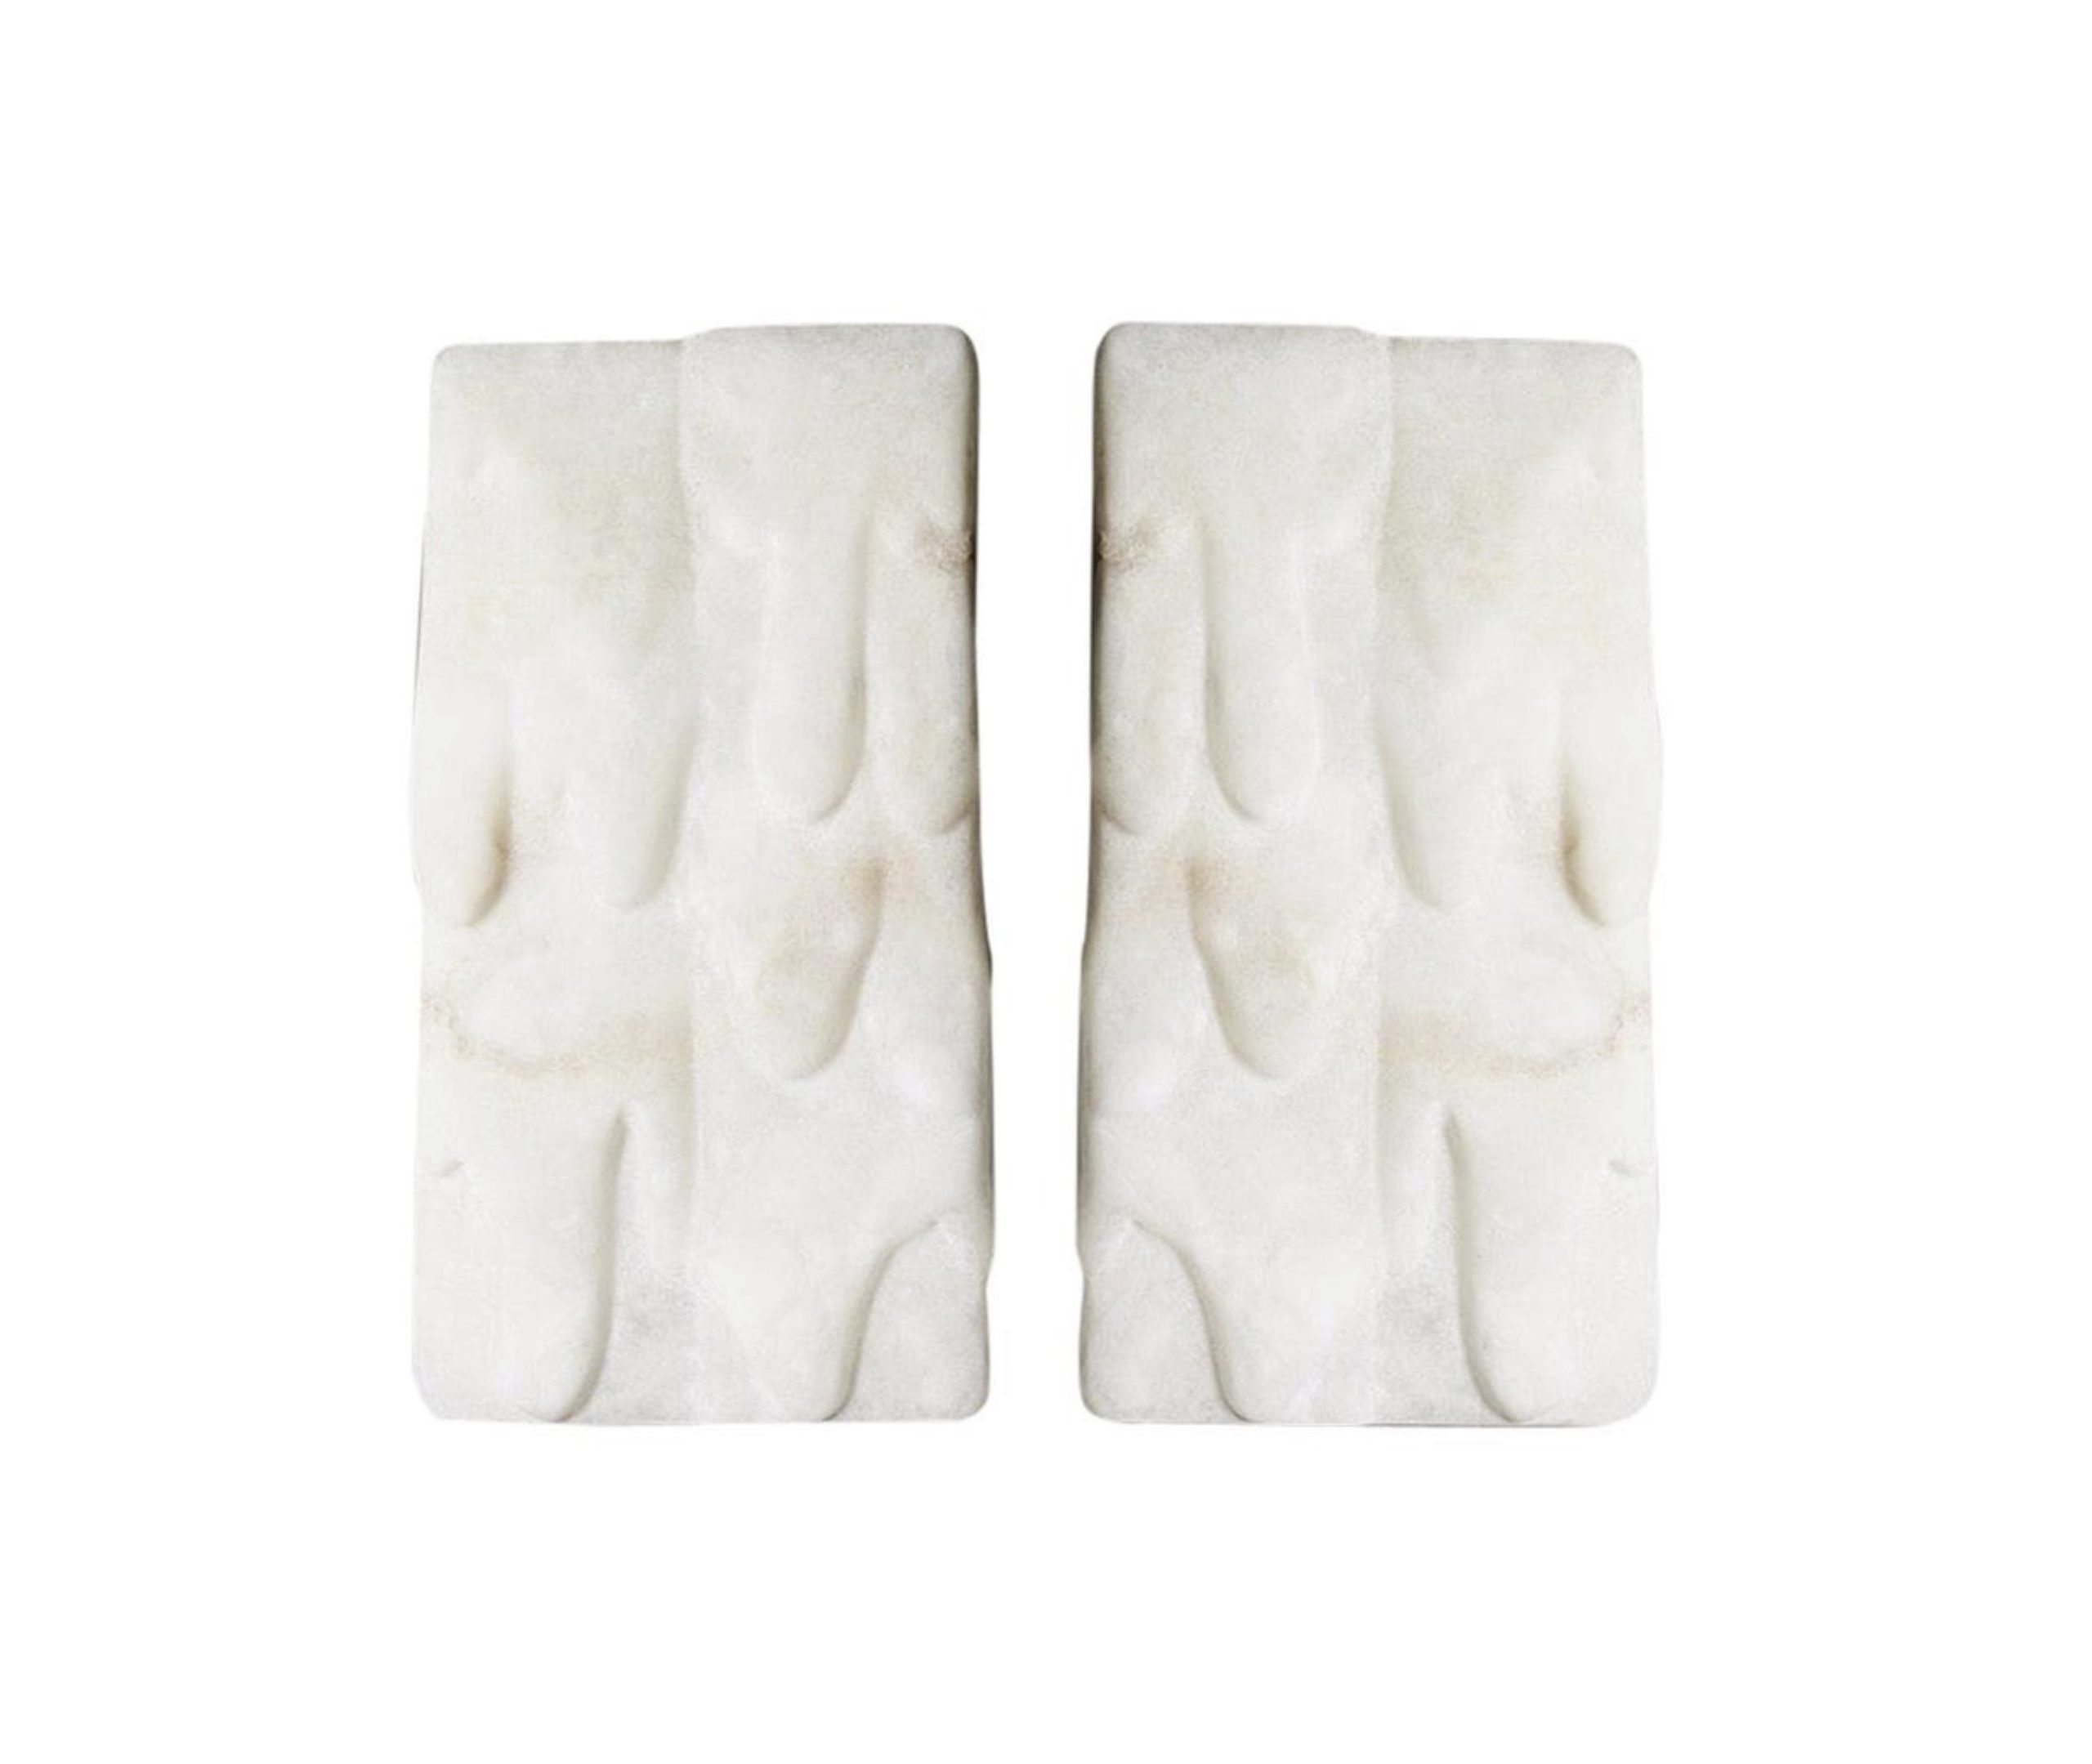 cosulich_interiors_and_antiques_products_new_york_design_bespoke_minimalist_italian_neoclassical_drop_decor_white_alabaster_modern_sconce-scaled-1